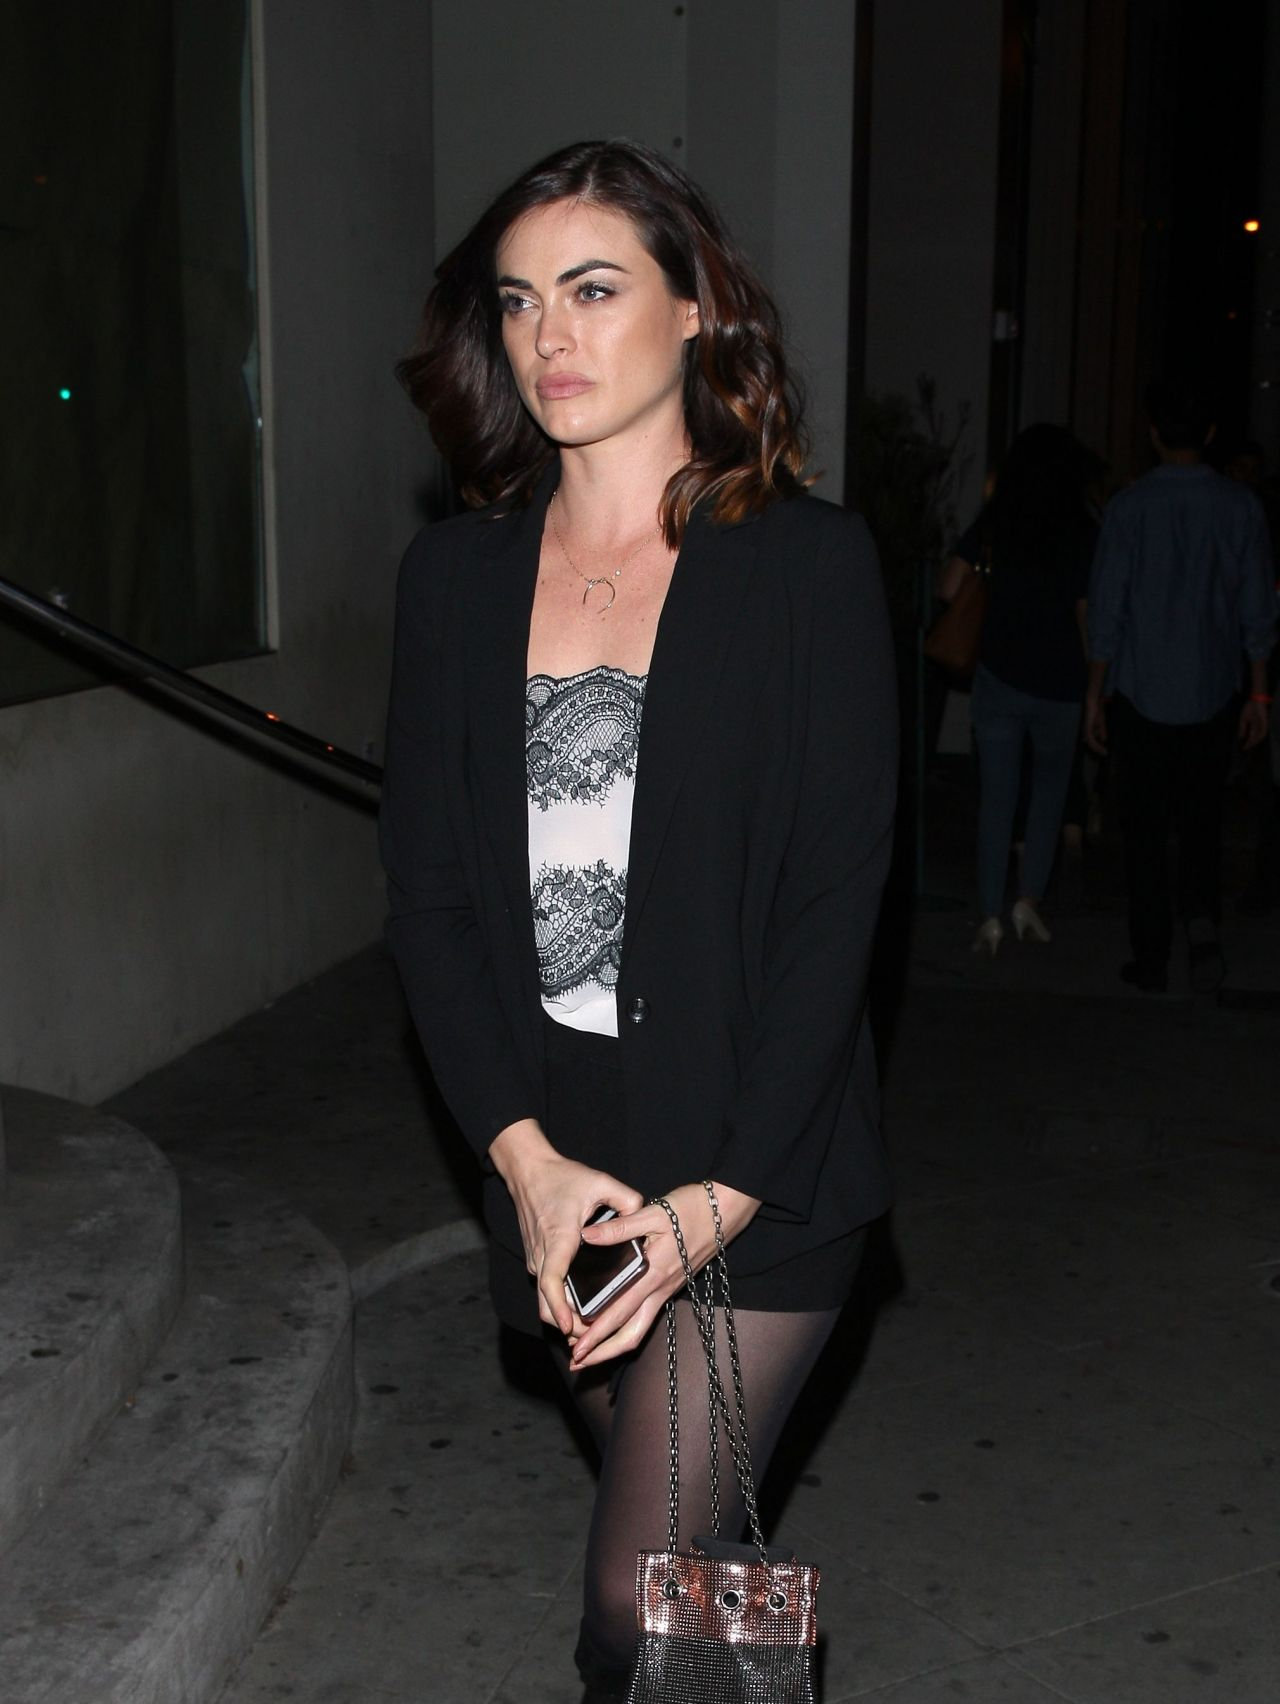 Phoebe Tonkin at Catch LA Restaurant in West Hollywood 3 ...